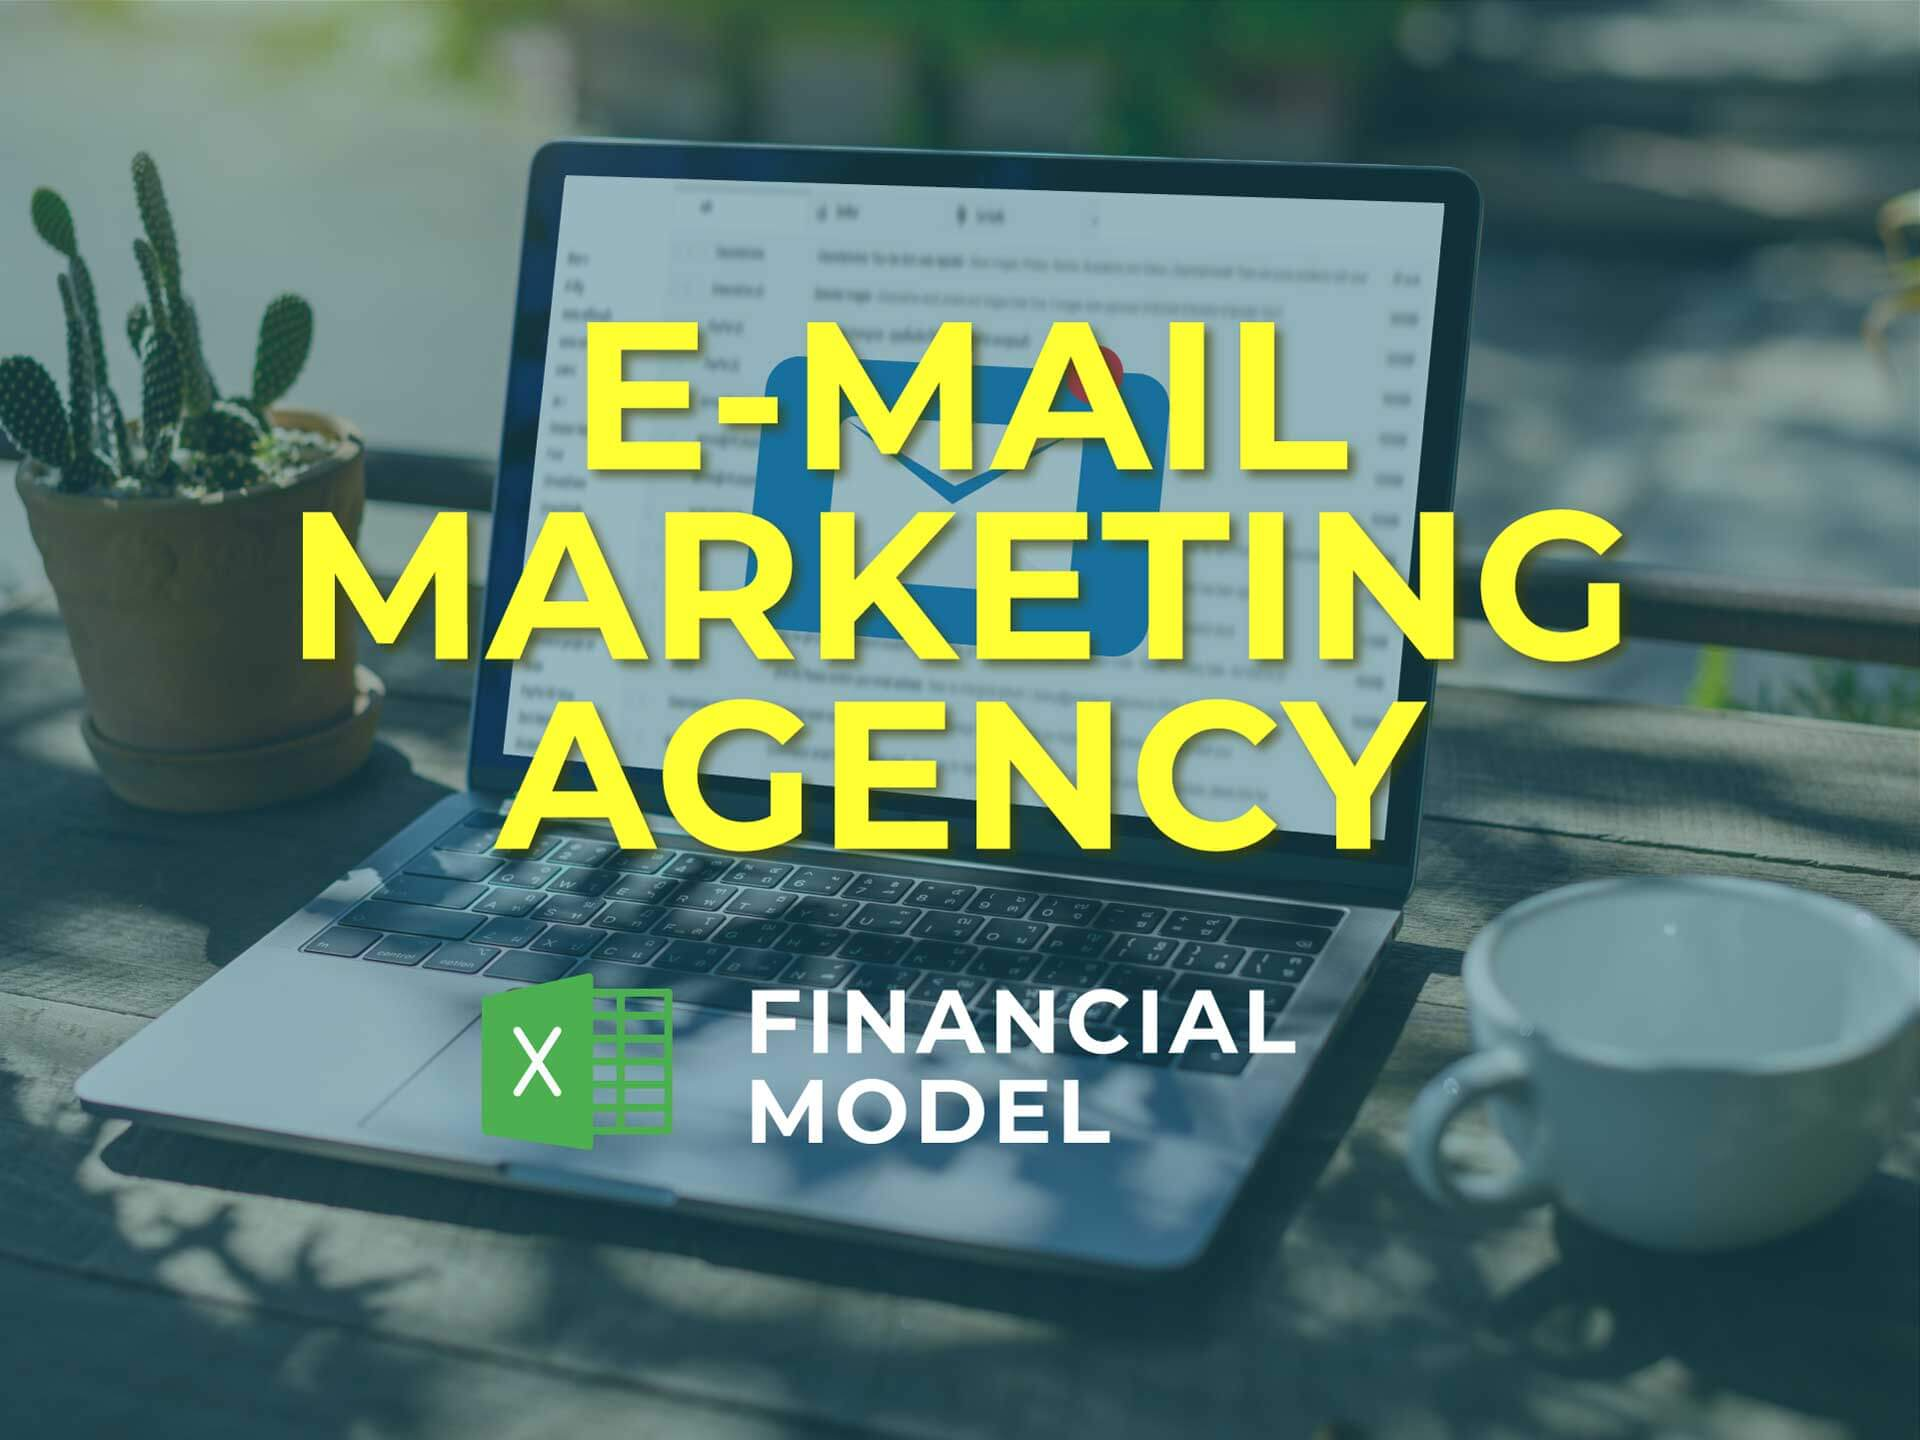 Email Marketig Agency